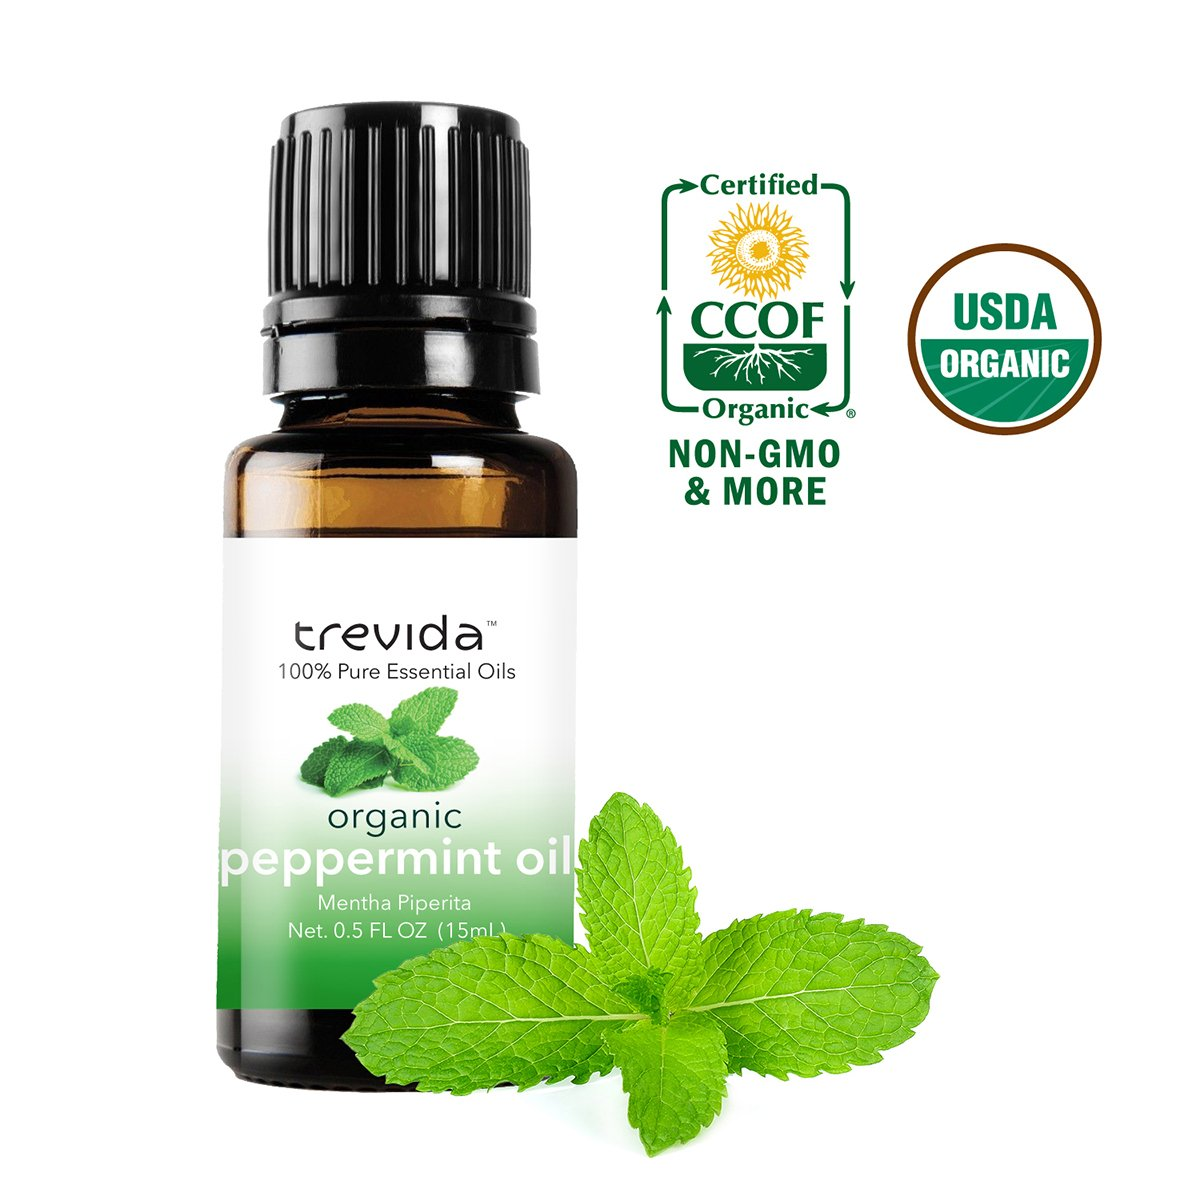 Trevida Certified Organic Peppermint Essential Oil | 15 ml | Repel Mice & Bugs, Aromatherapy, Headache Relief, Dandruff, And Acne.